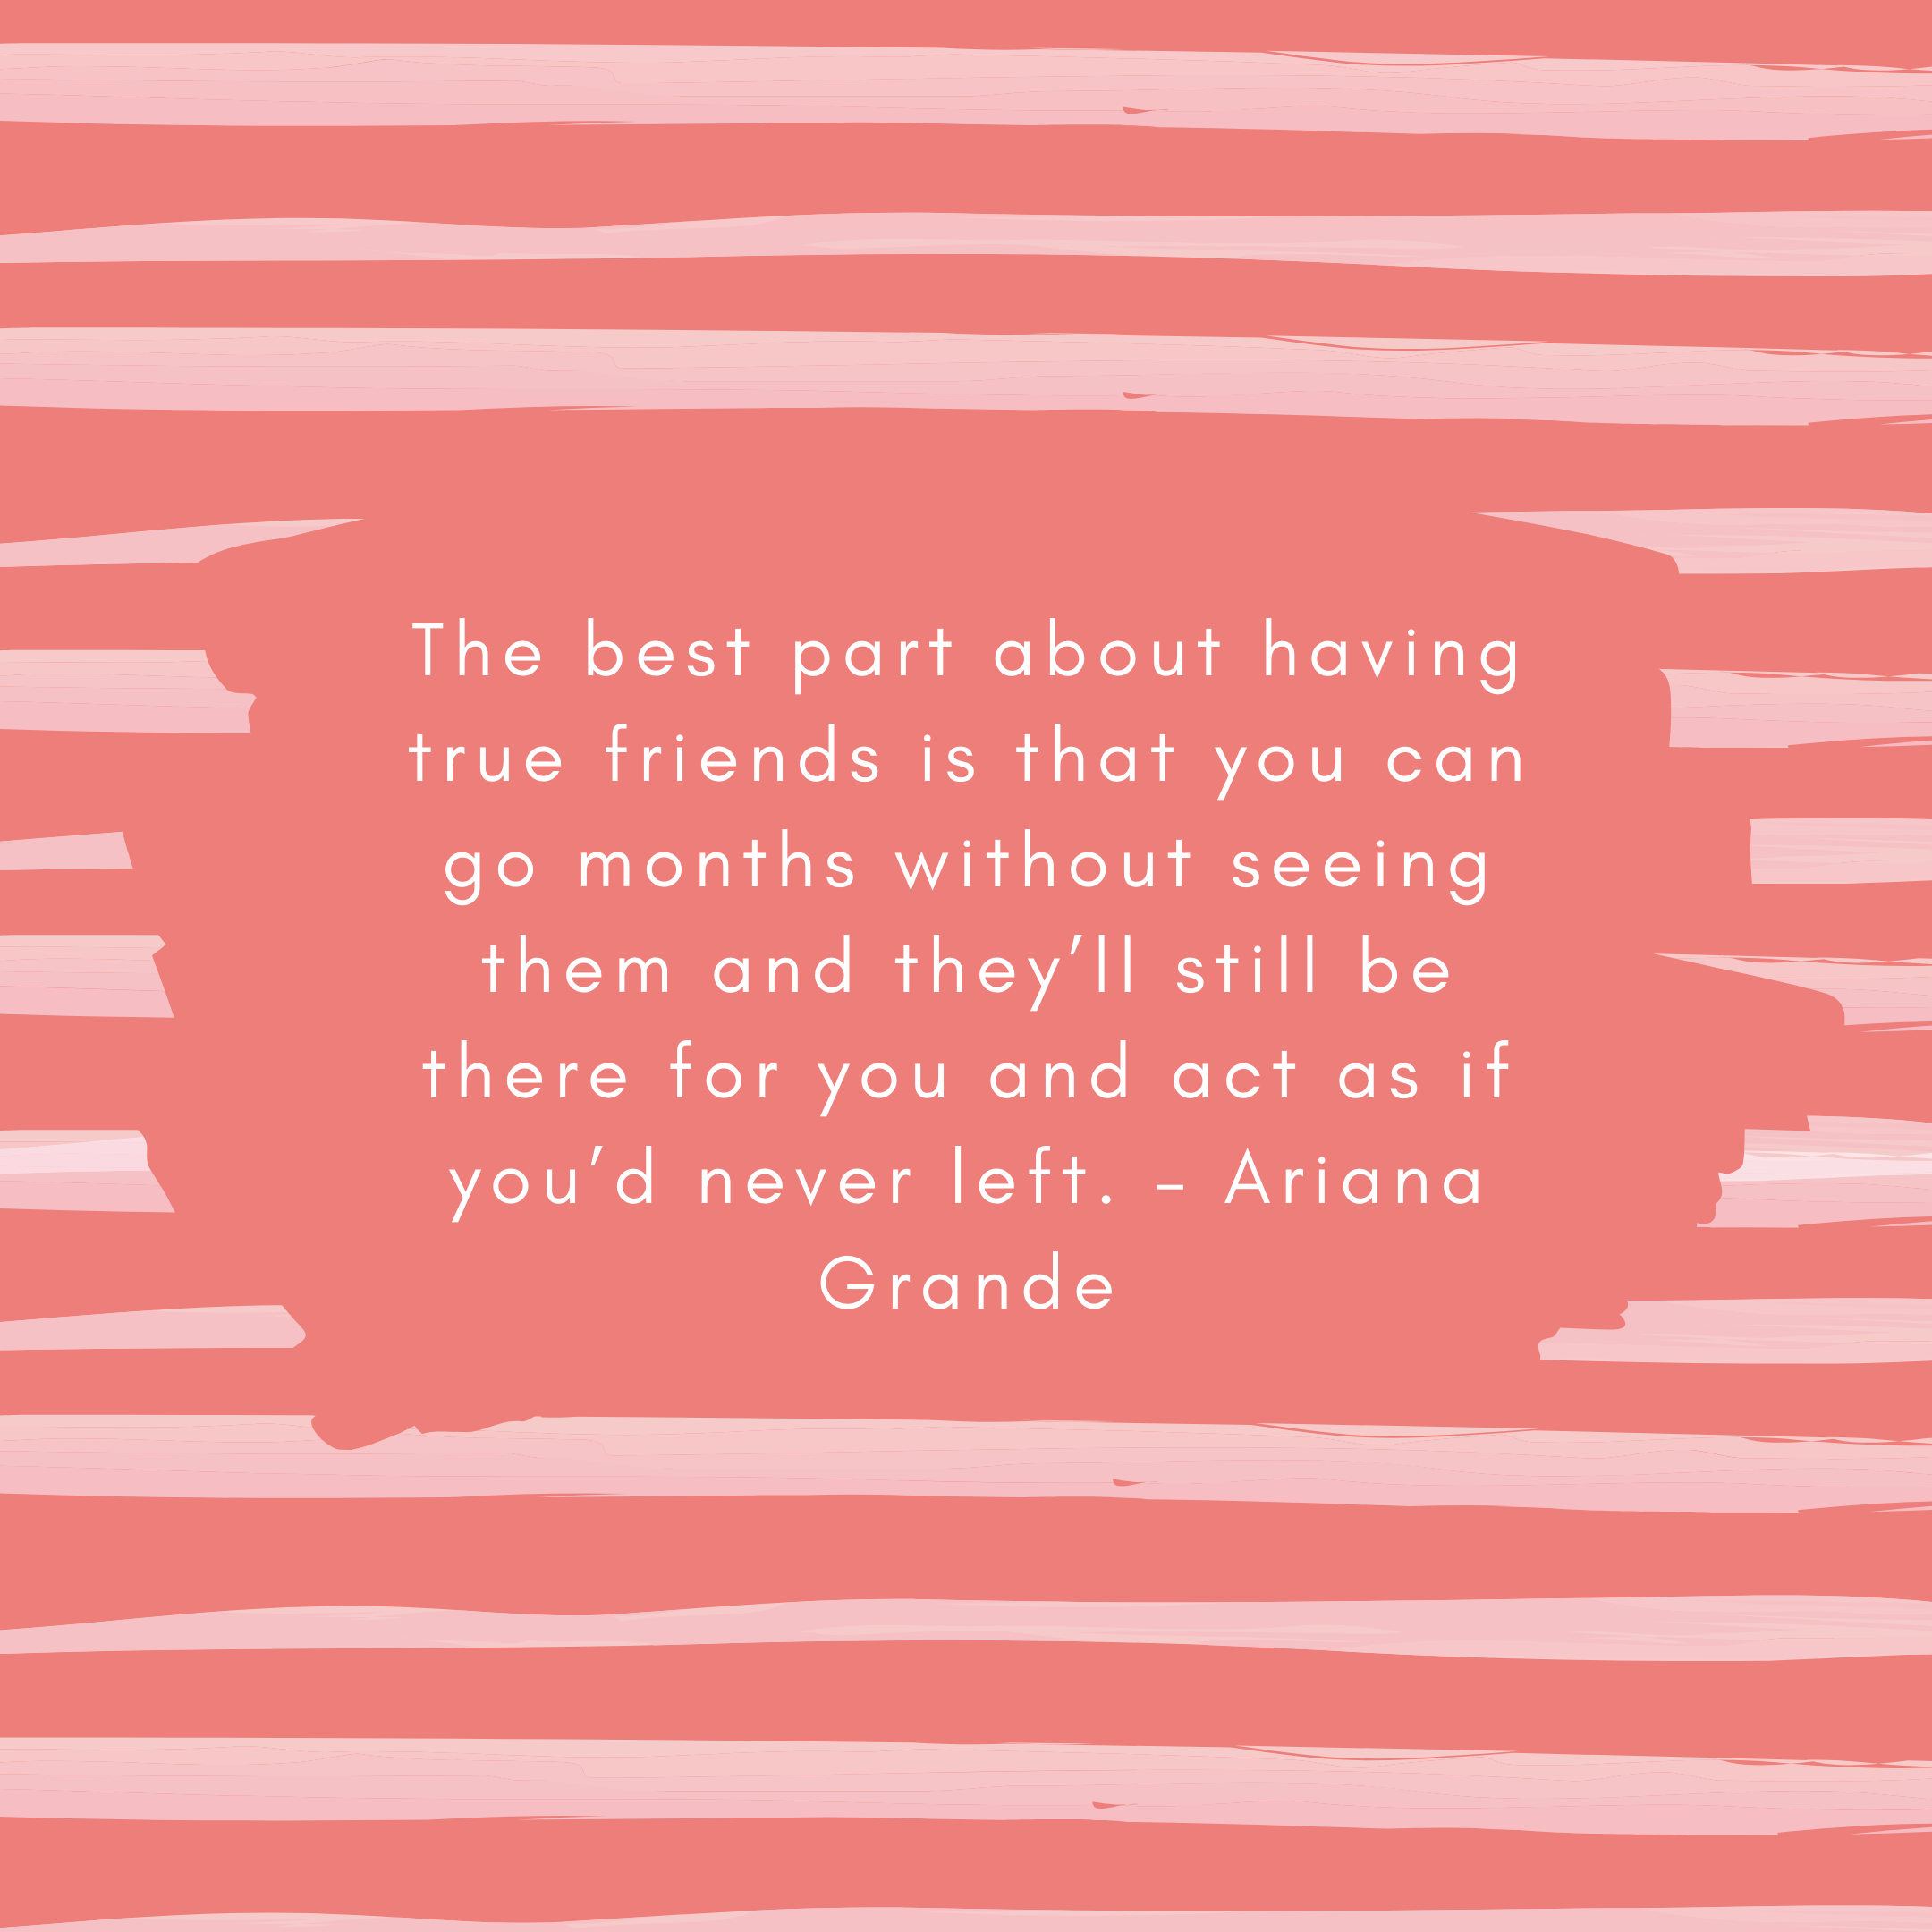 The best part about having true friends is that you can go months without seeing them and they'll still be there for you and act as if you'd never left. – Ariana Grande